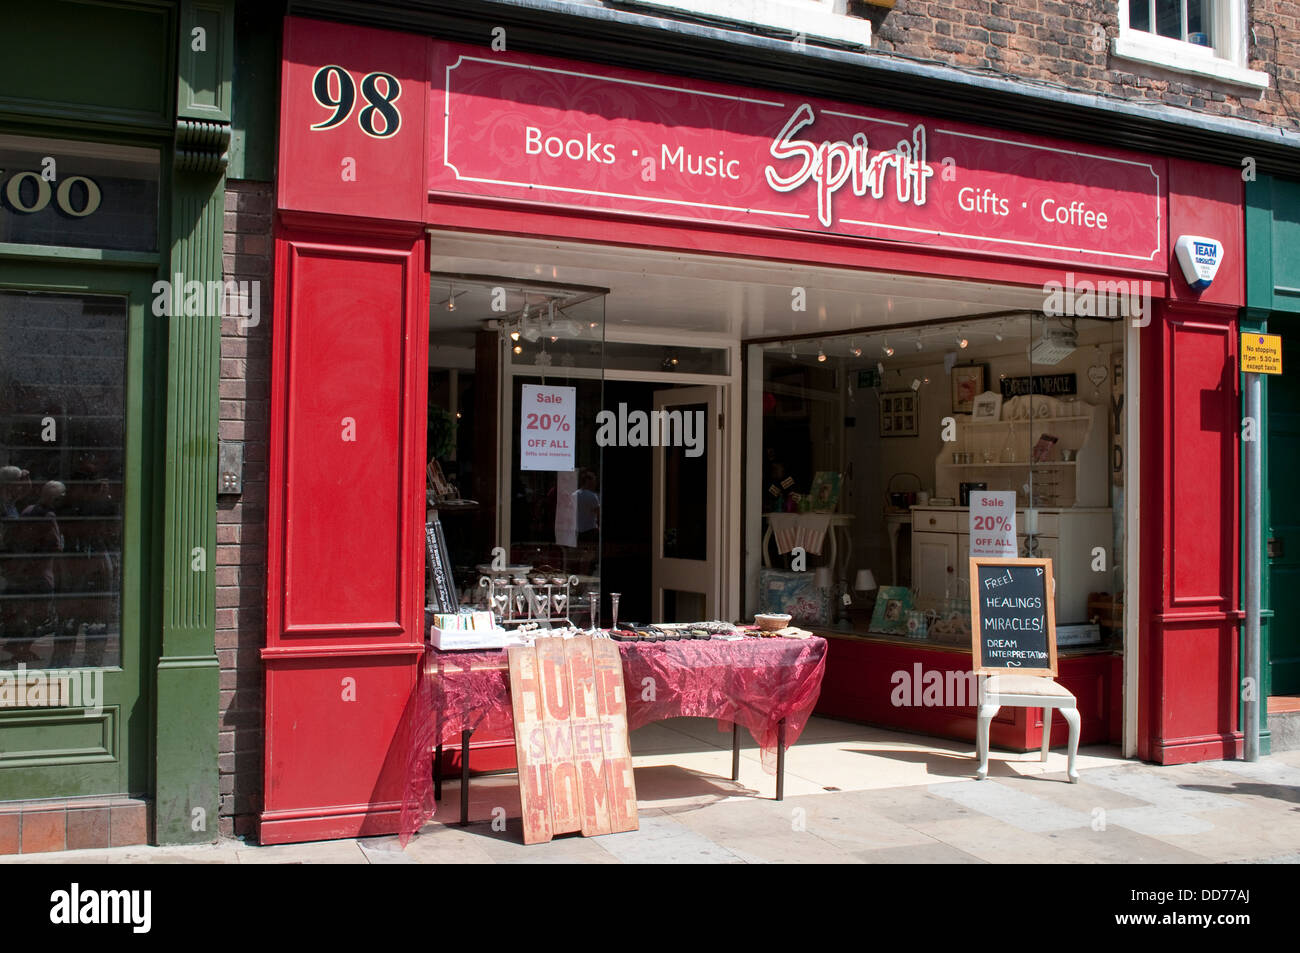 New Age shop 'Spirit' advertises, Free Healing miracles, Chester, UK - Stock Image